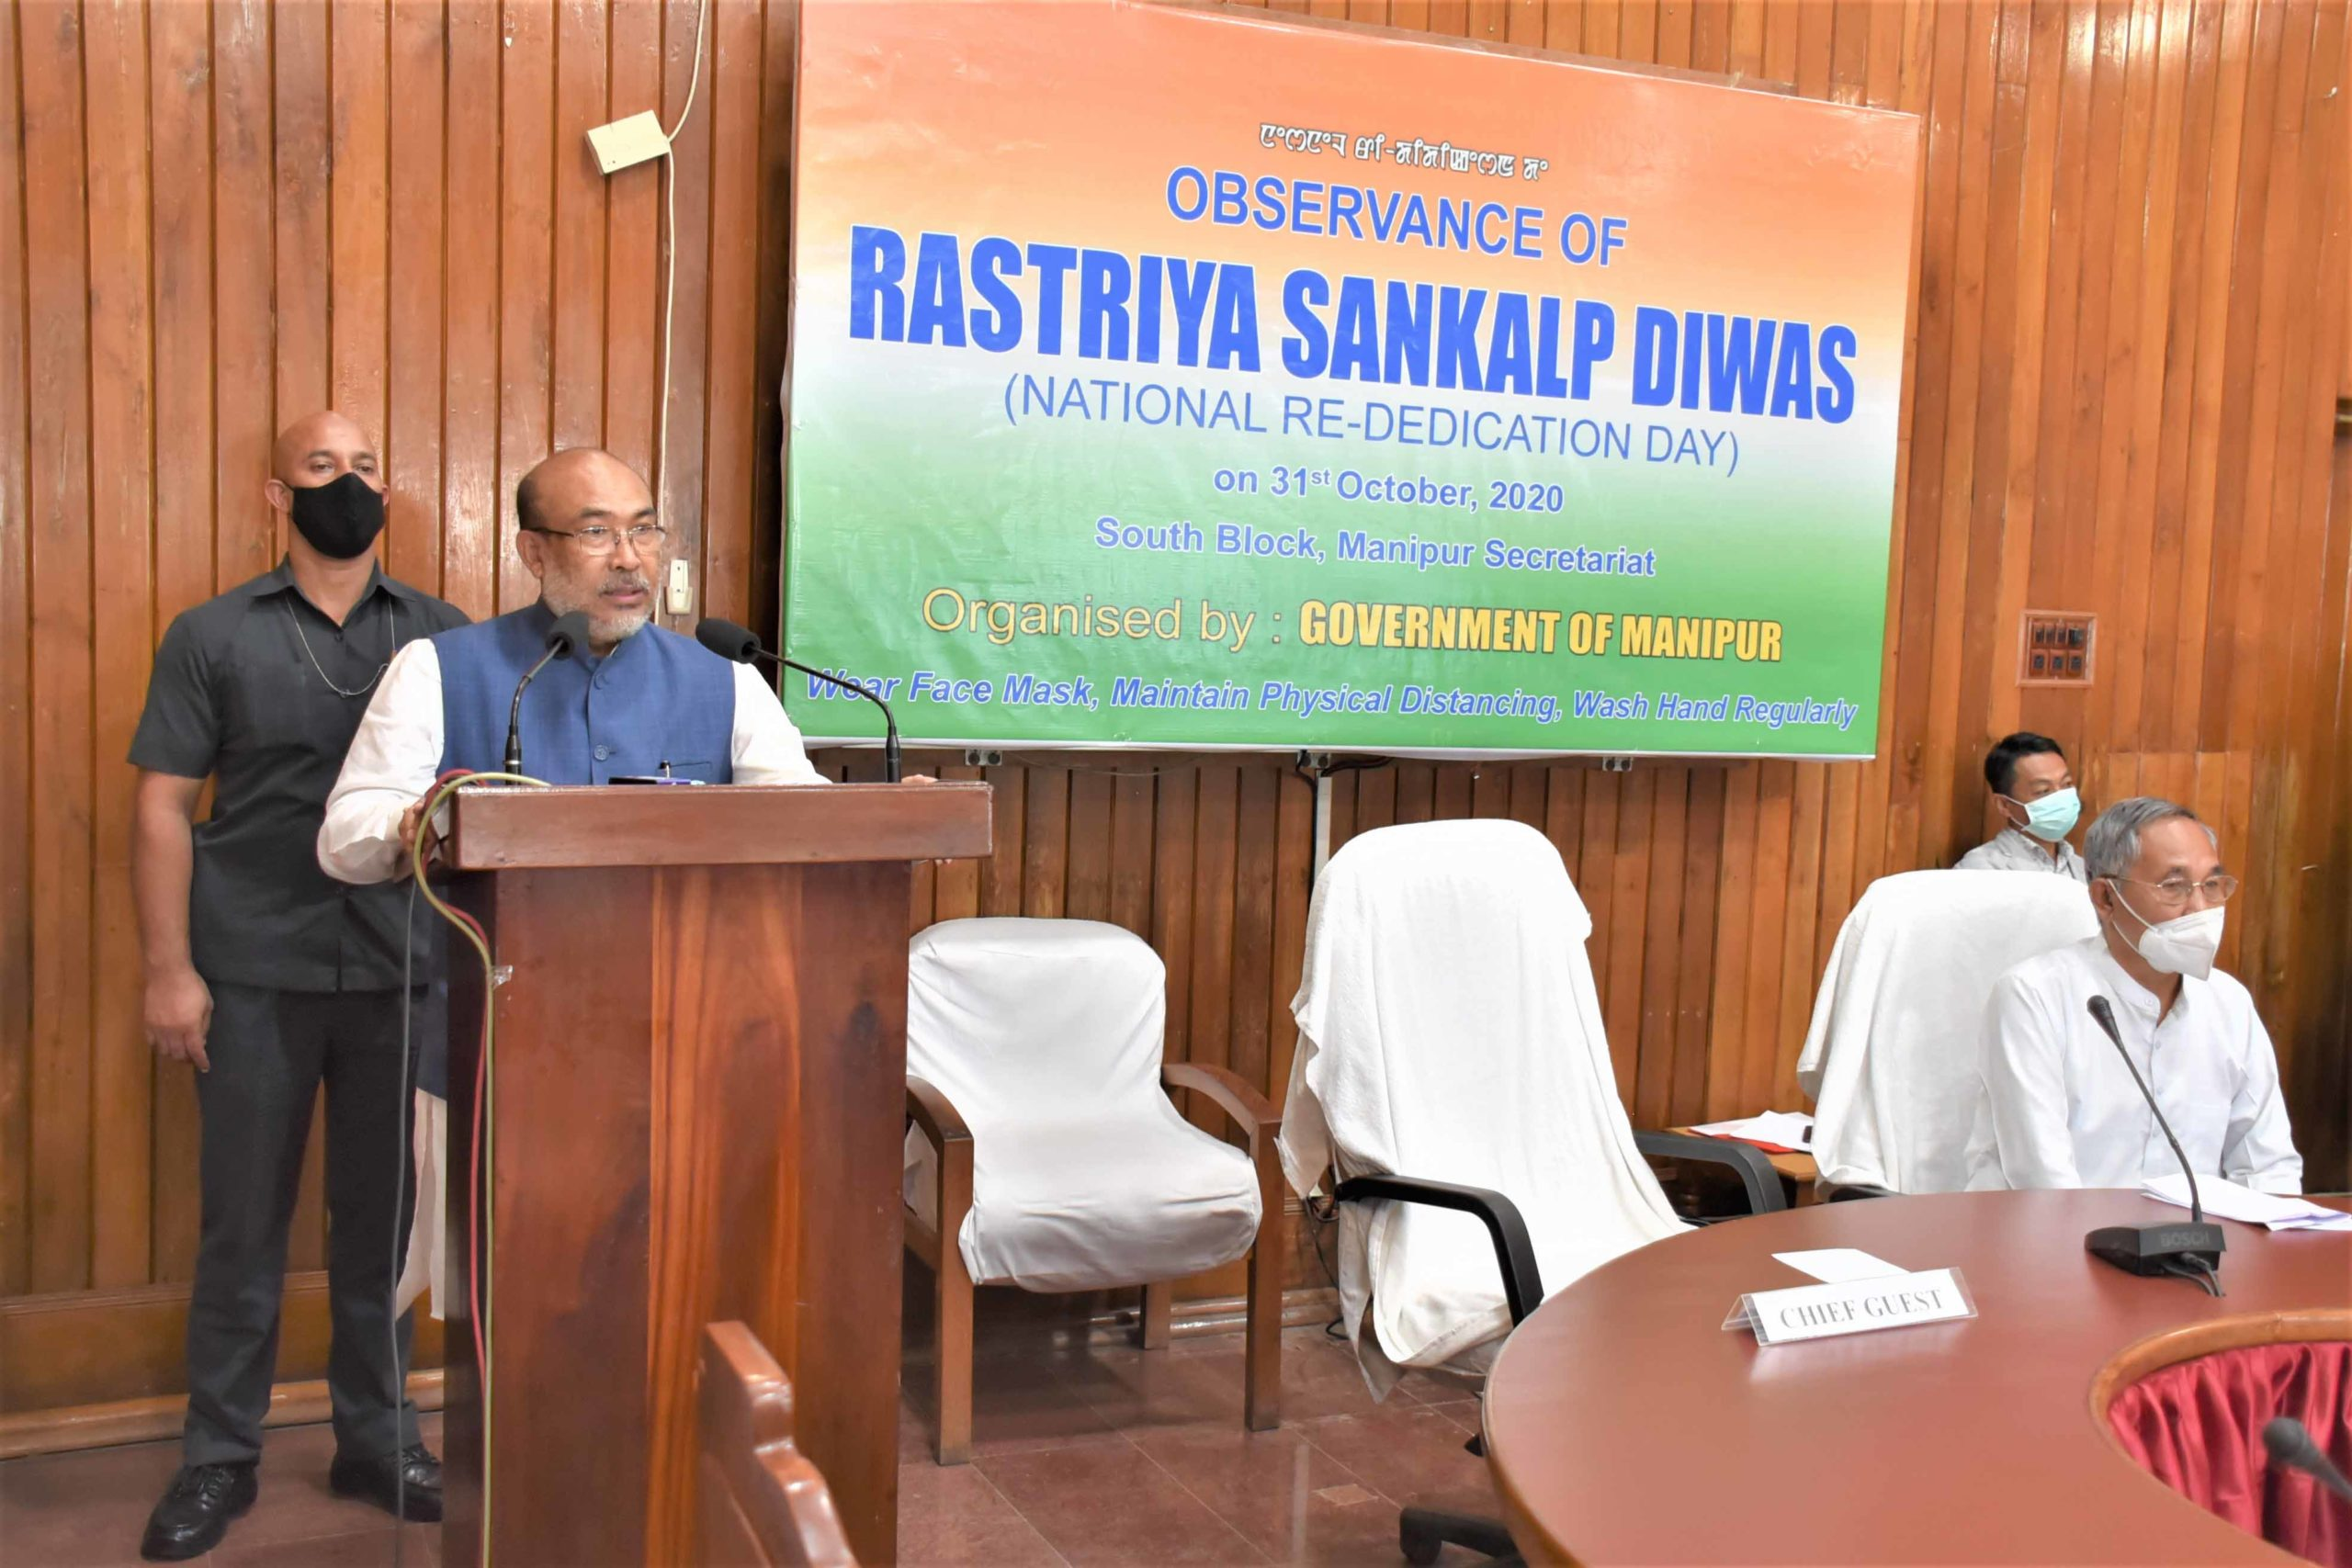 State Observes National Re-Dedication Day